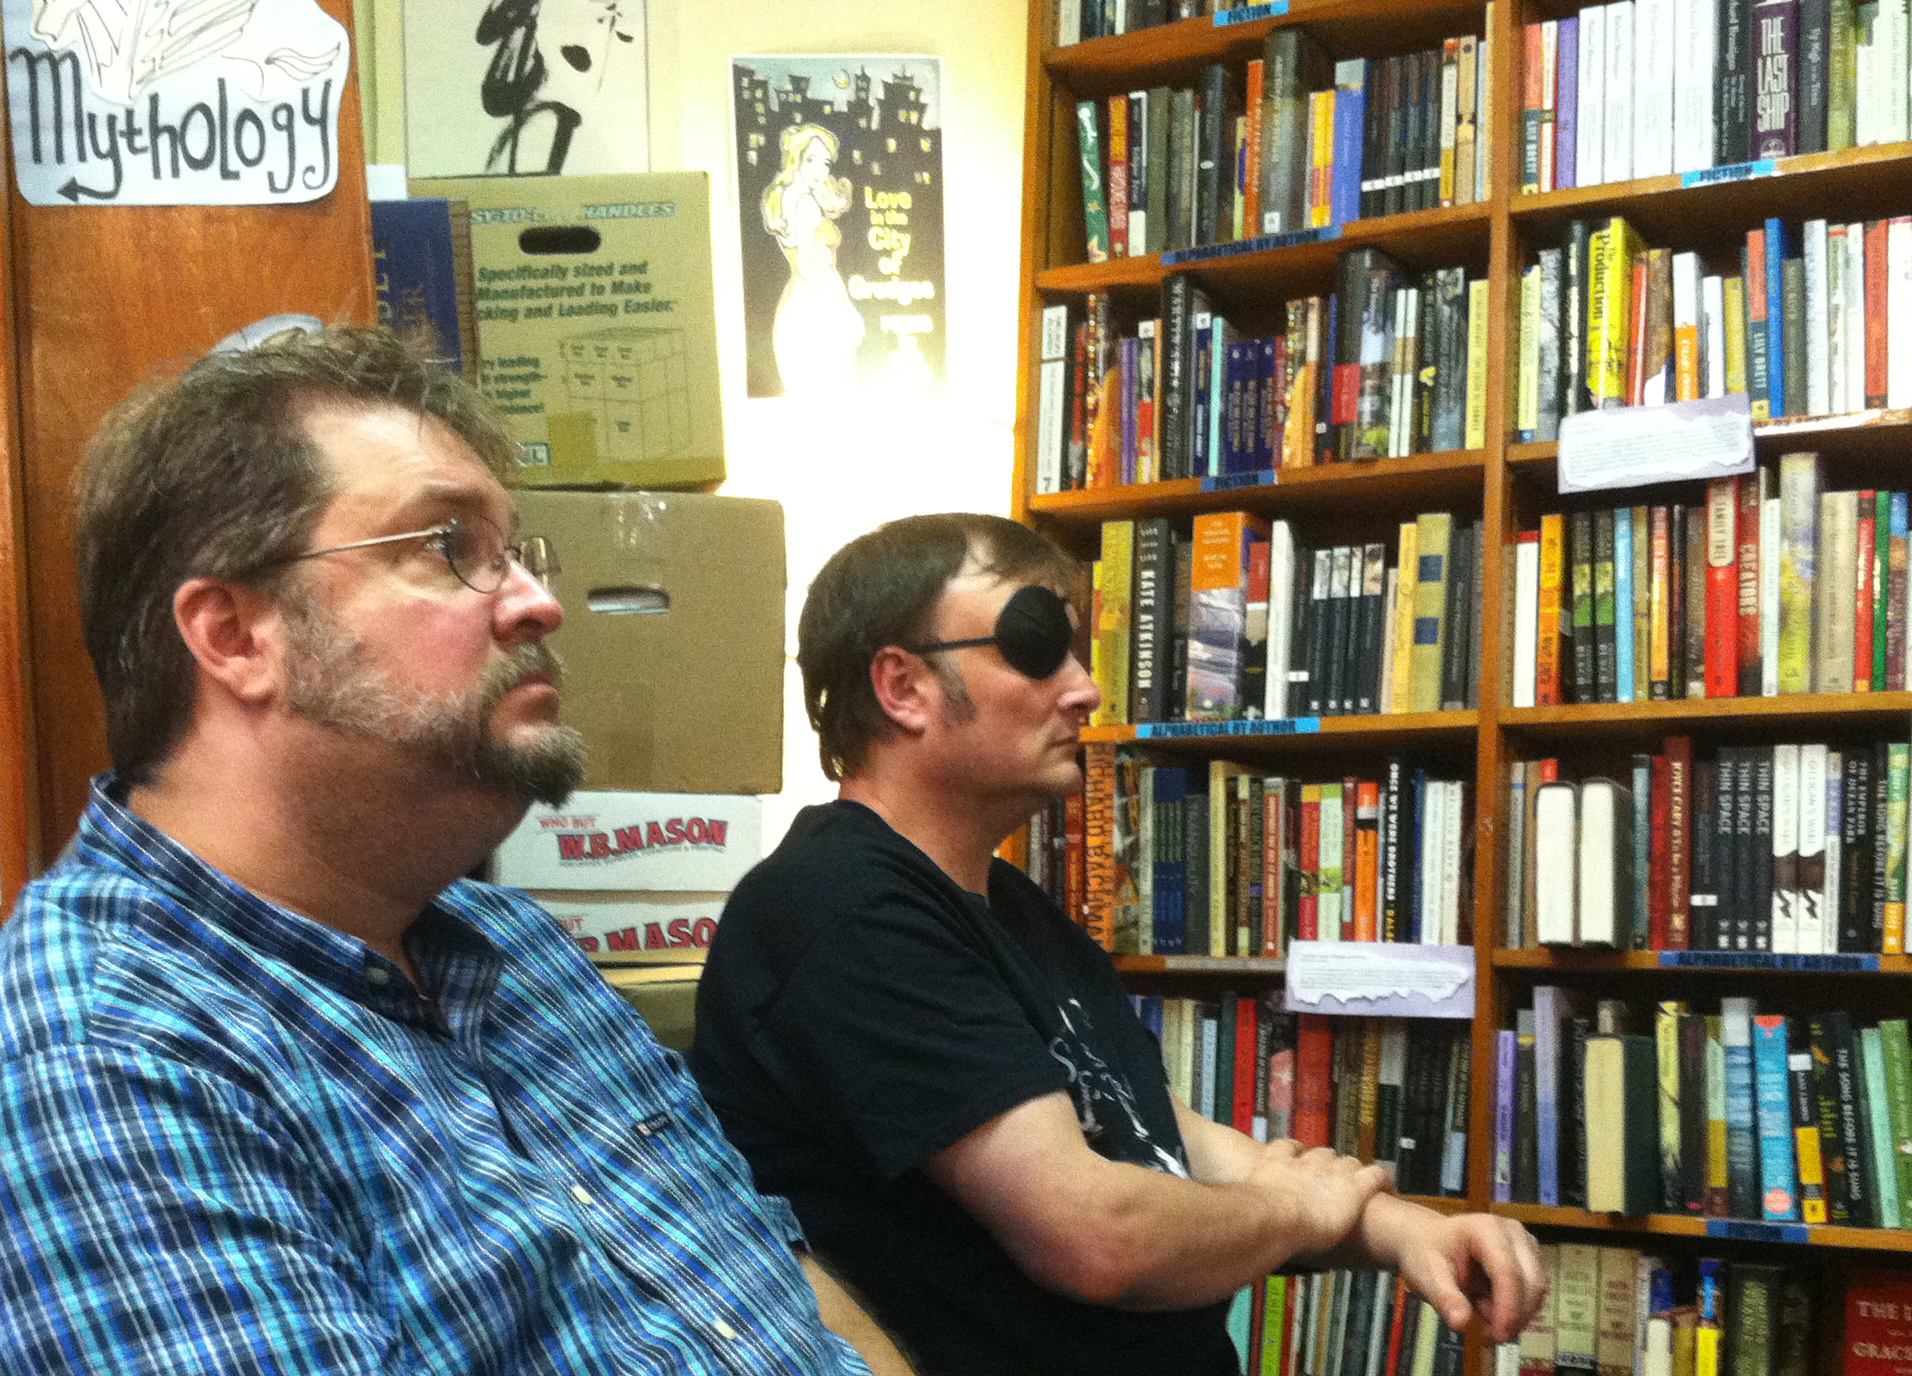 Shveta captured the evidence that horror writer John Langan came out to my reading too. No pressure there, nope.